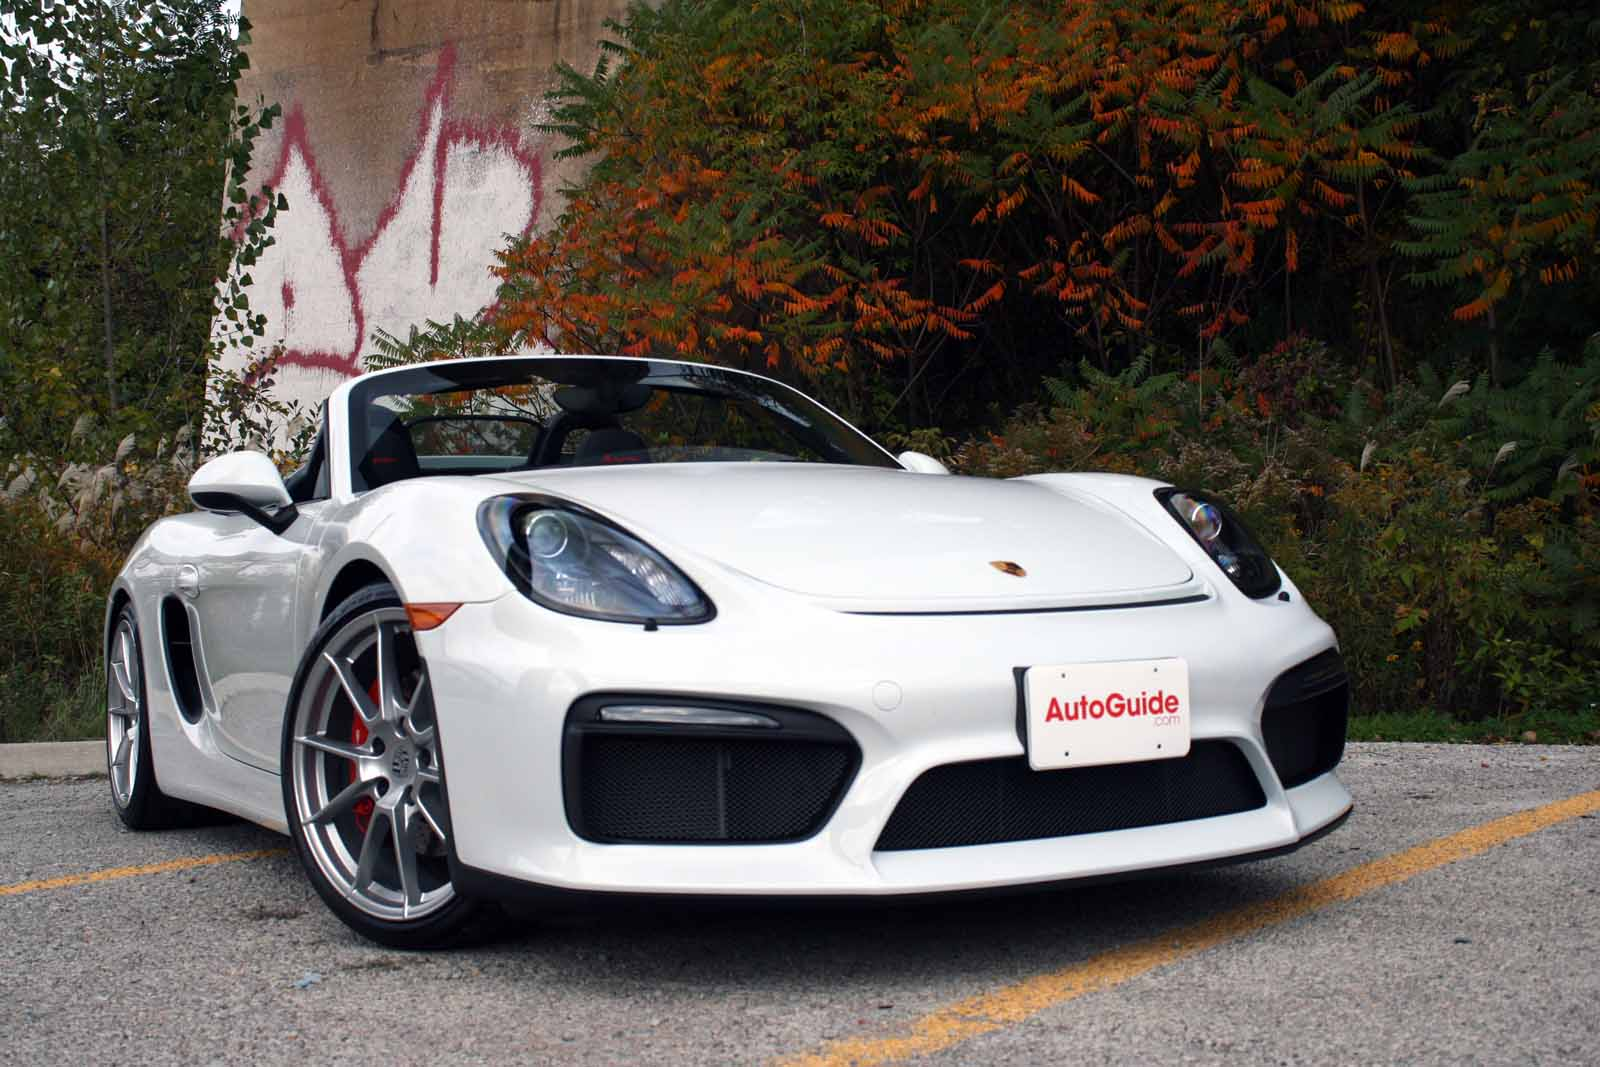 2016 jaguar f type vs 2016 porsche boxster spyder news. Black Bedroom Furniture Sets. Home Design Ideas